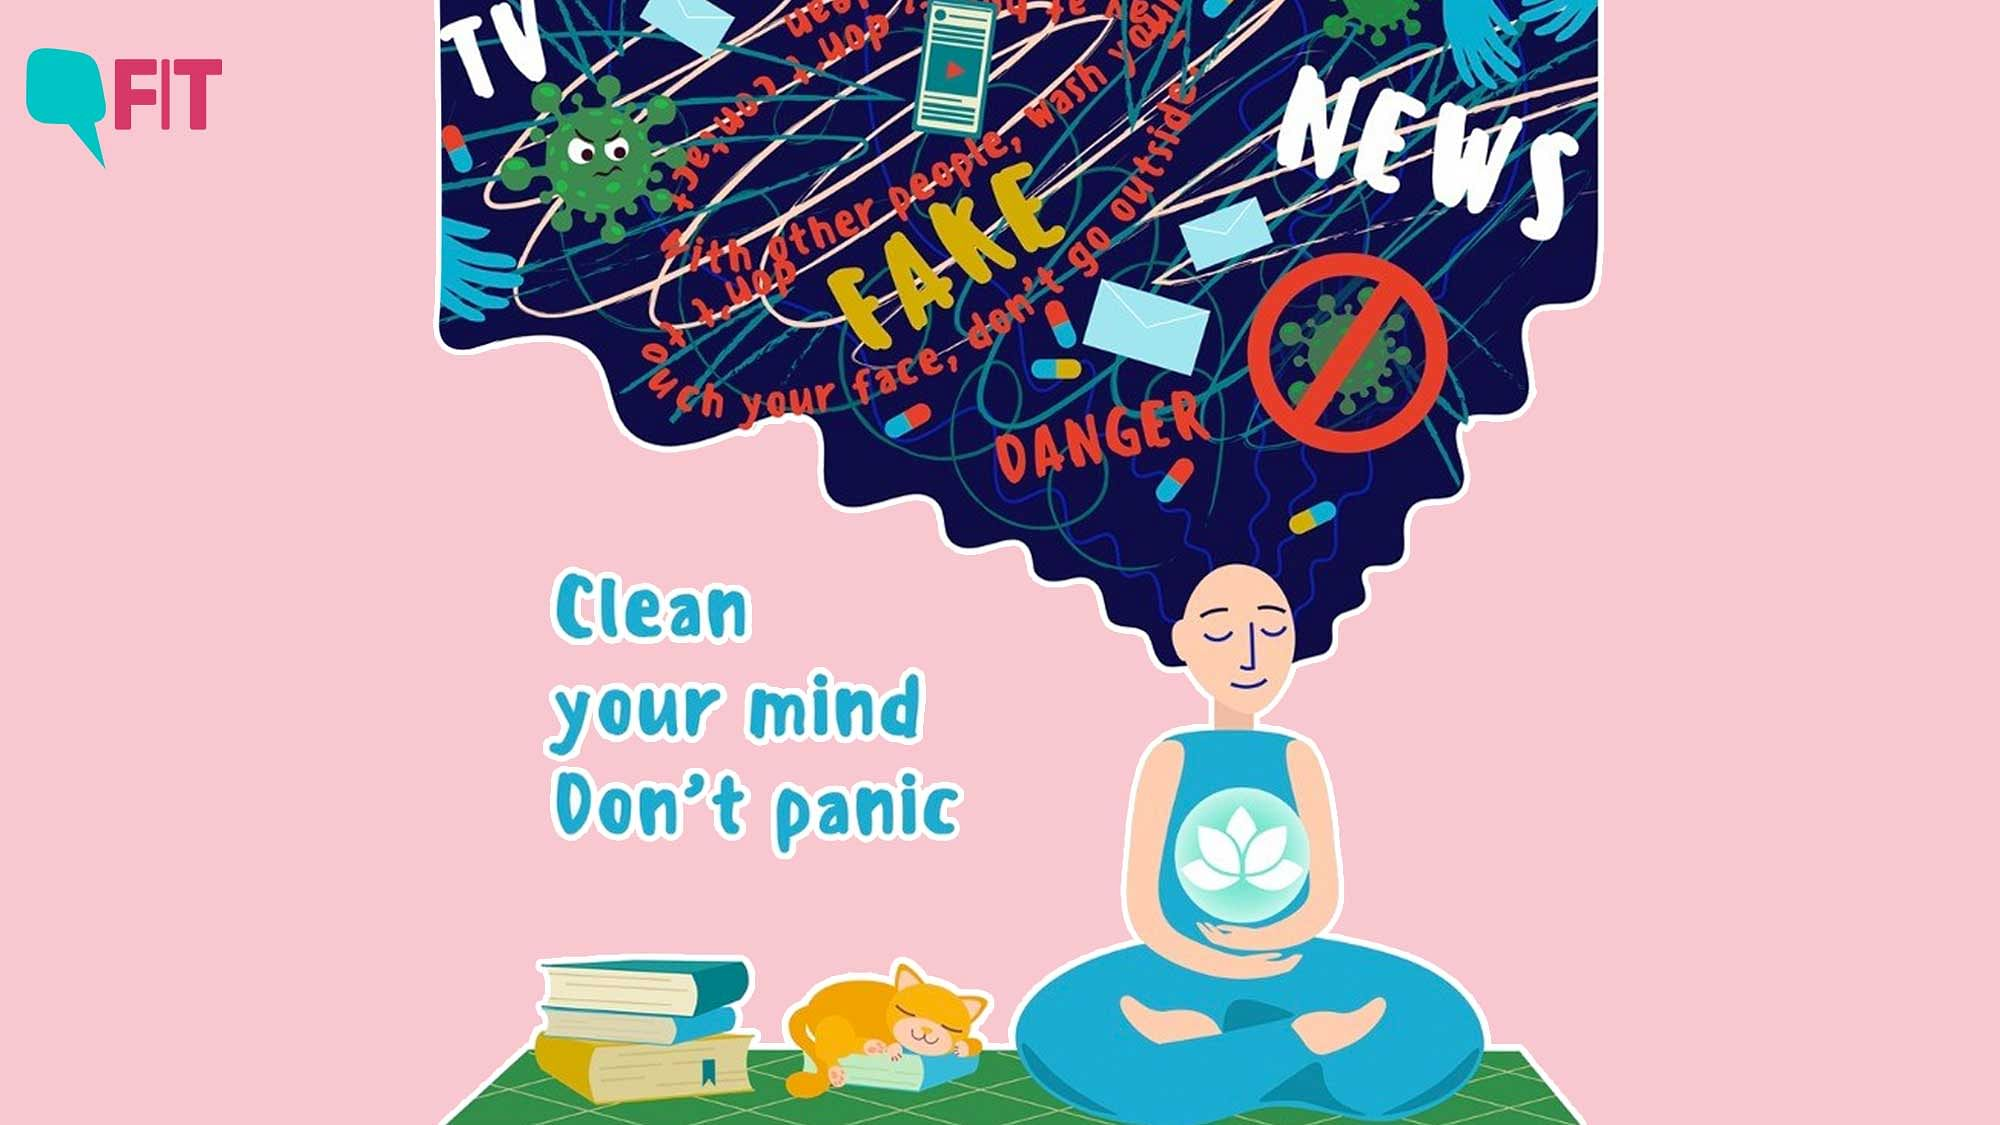 How can mindfulness help during a pandemic?